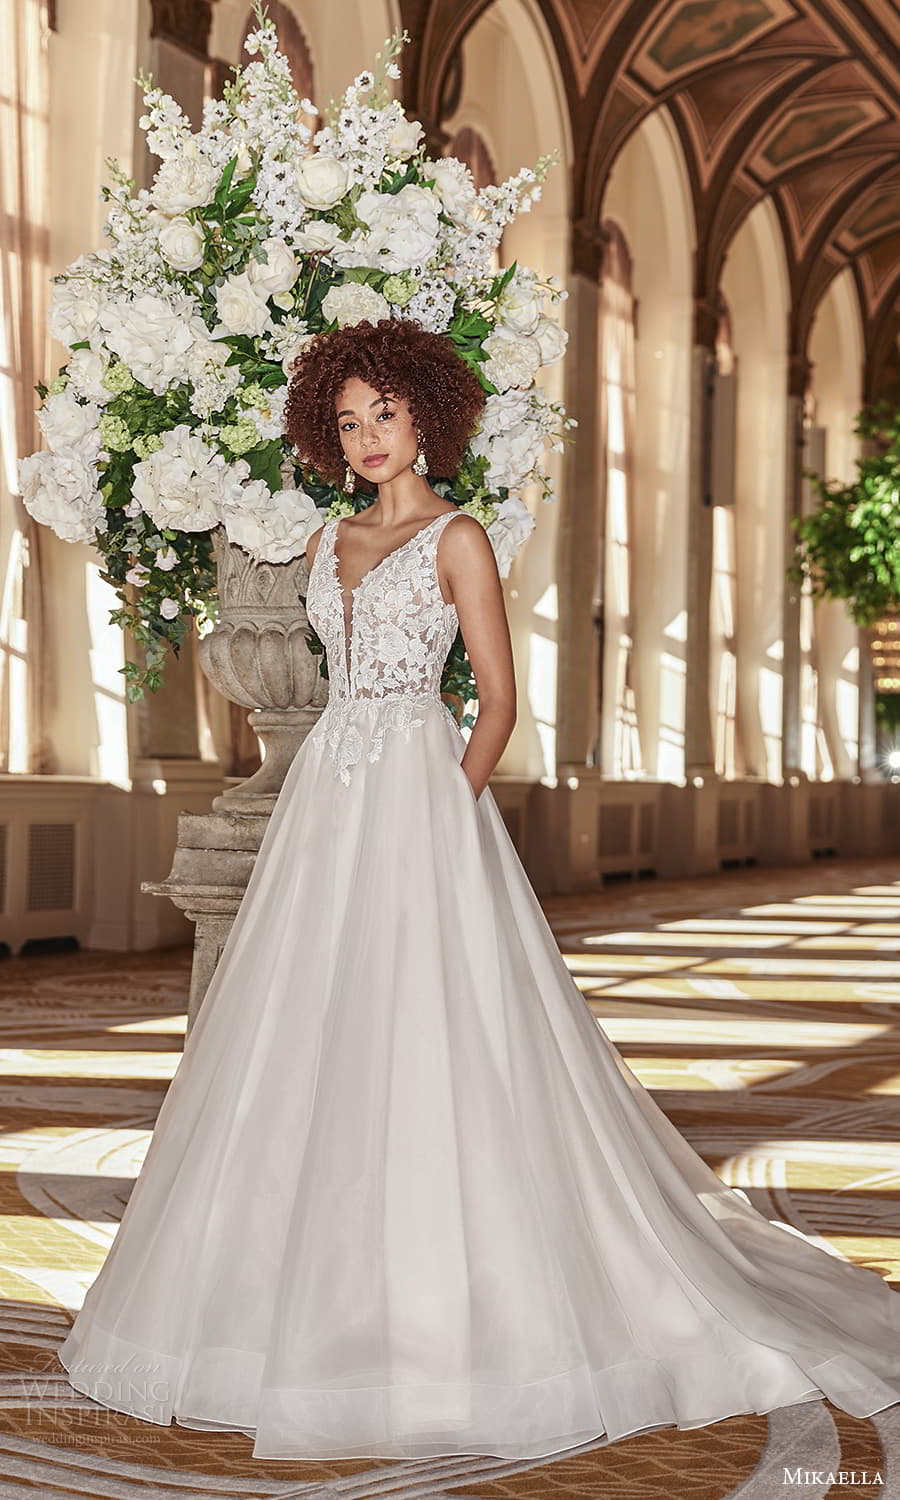 mikaella fall 2021 bridal sleeveless straps plunging v neckline lace bodice clean skirt a line ball gown wedding dress chapel train (6) mv